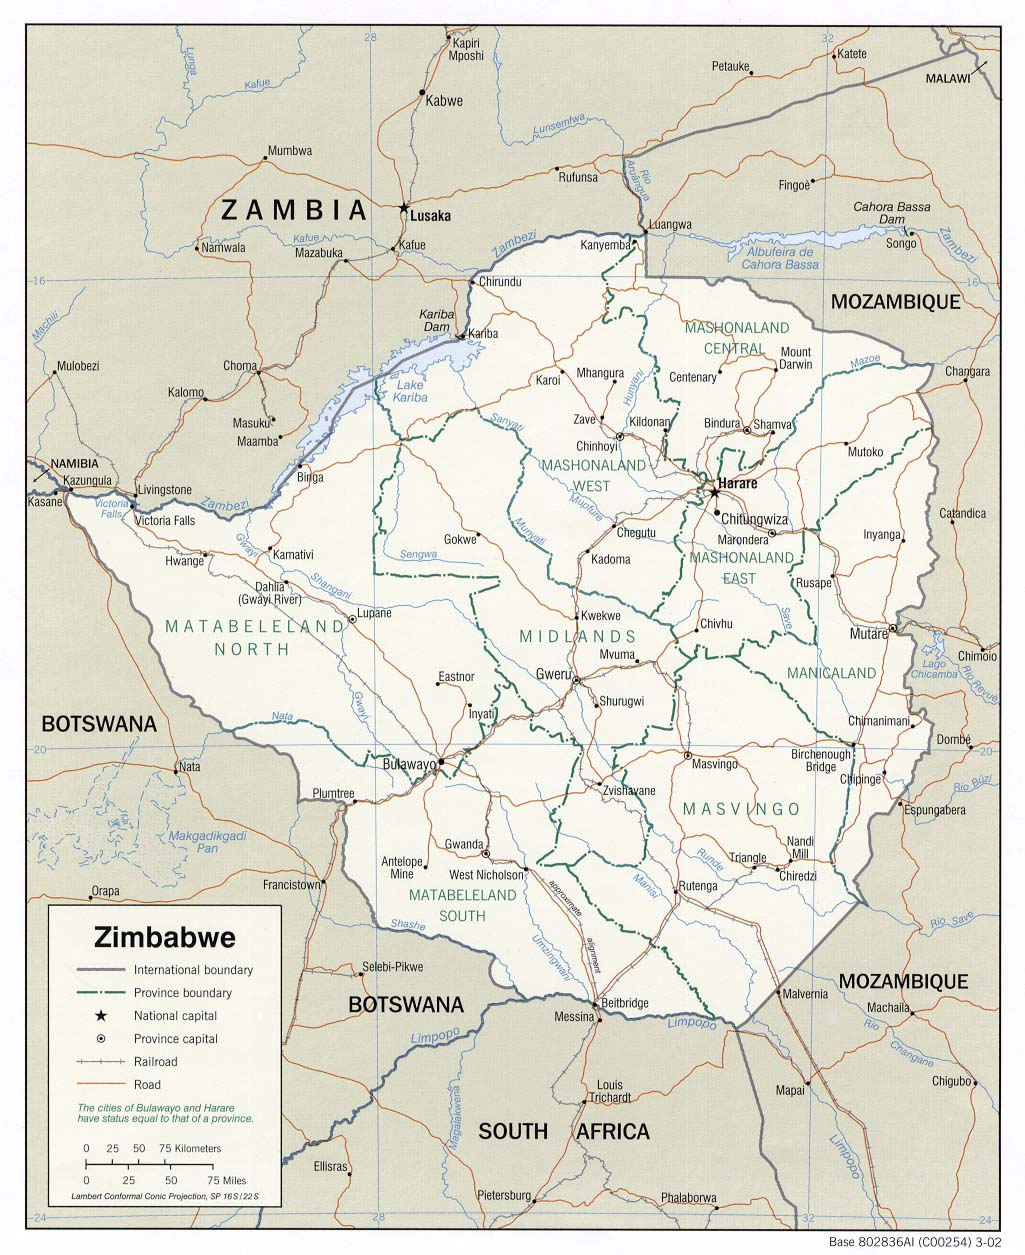 Zimbabwe Maps - Perry-Castañeda Map Collection - UT Library Online